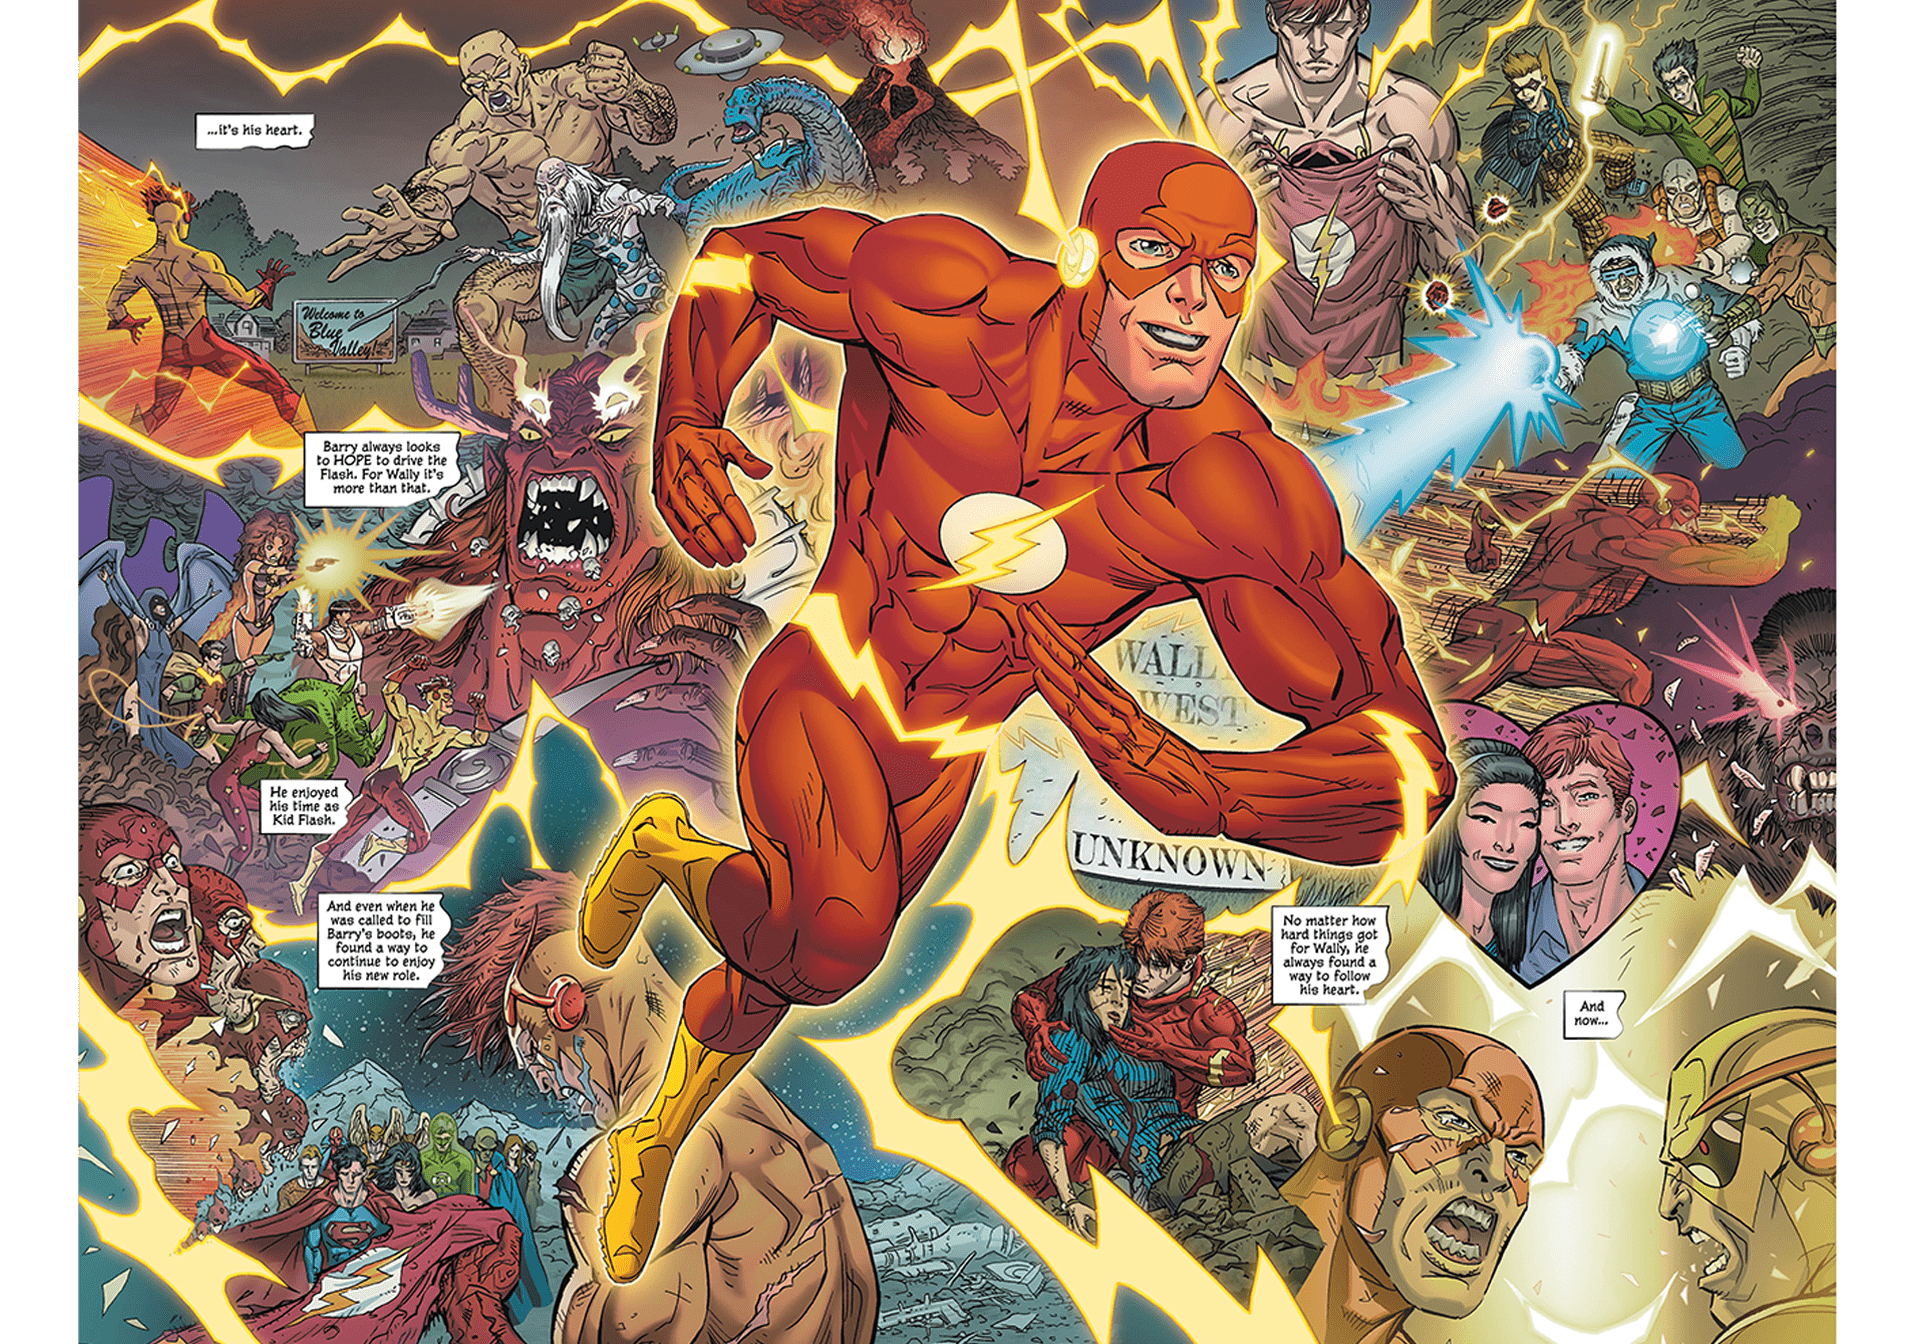 The Life Story of Wally West. With Flash War over, what will become of DC's best speedster?